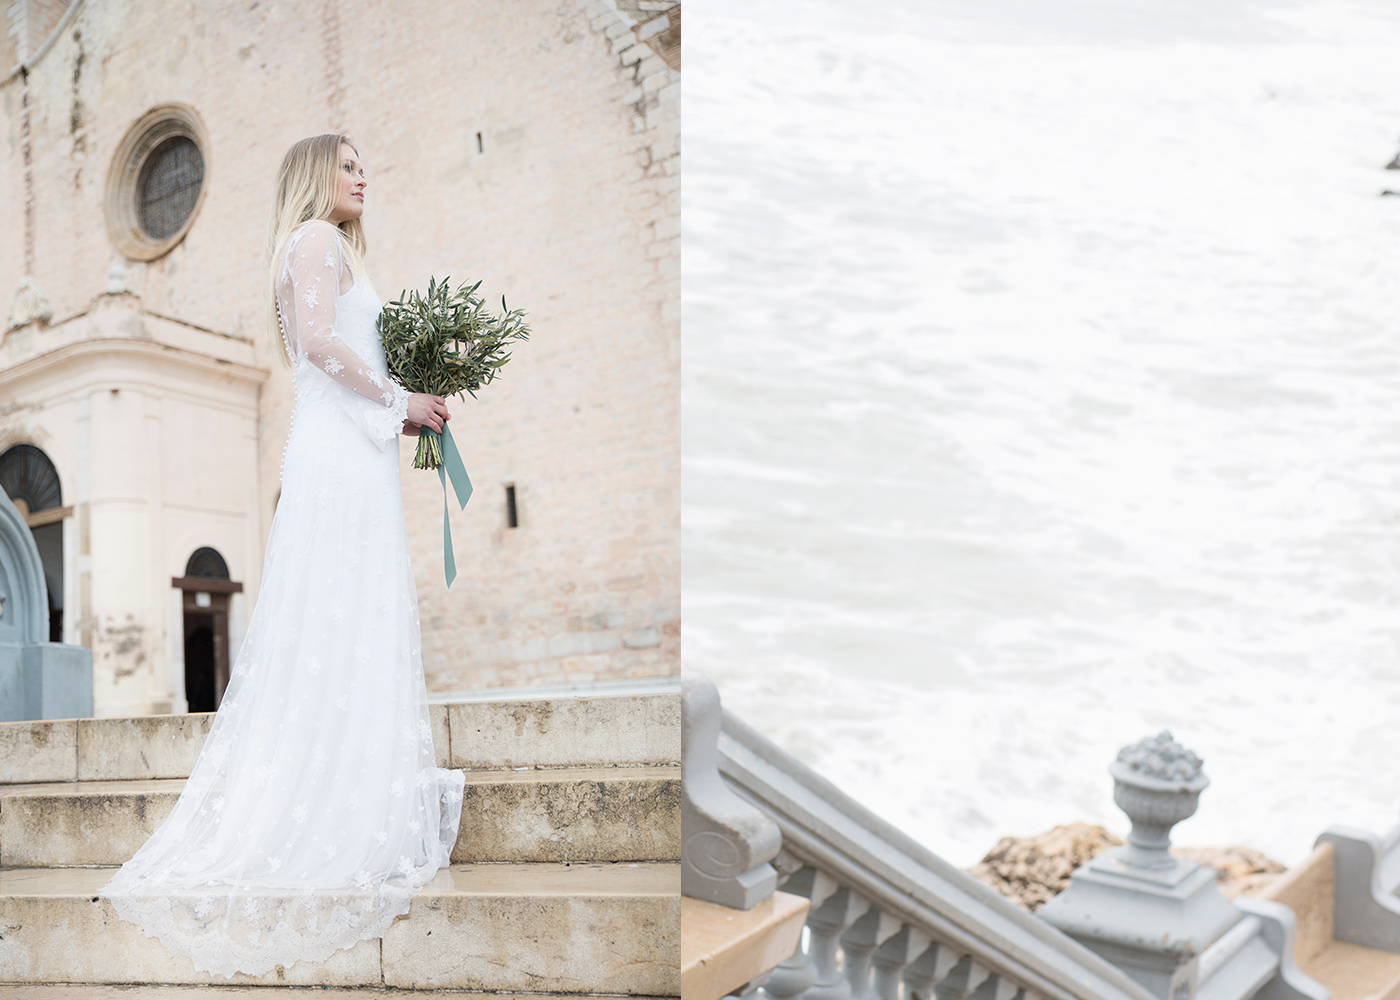 Wedding photographer Sitges